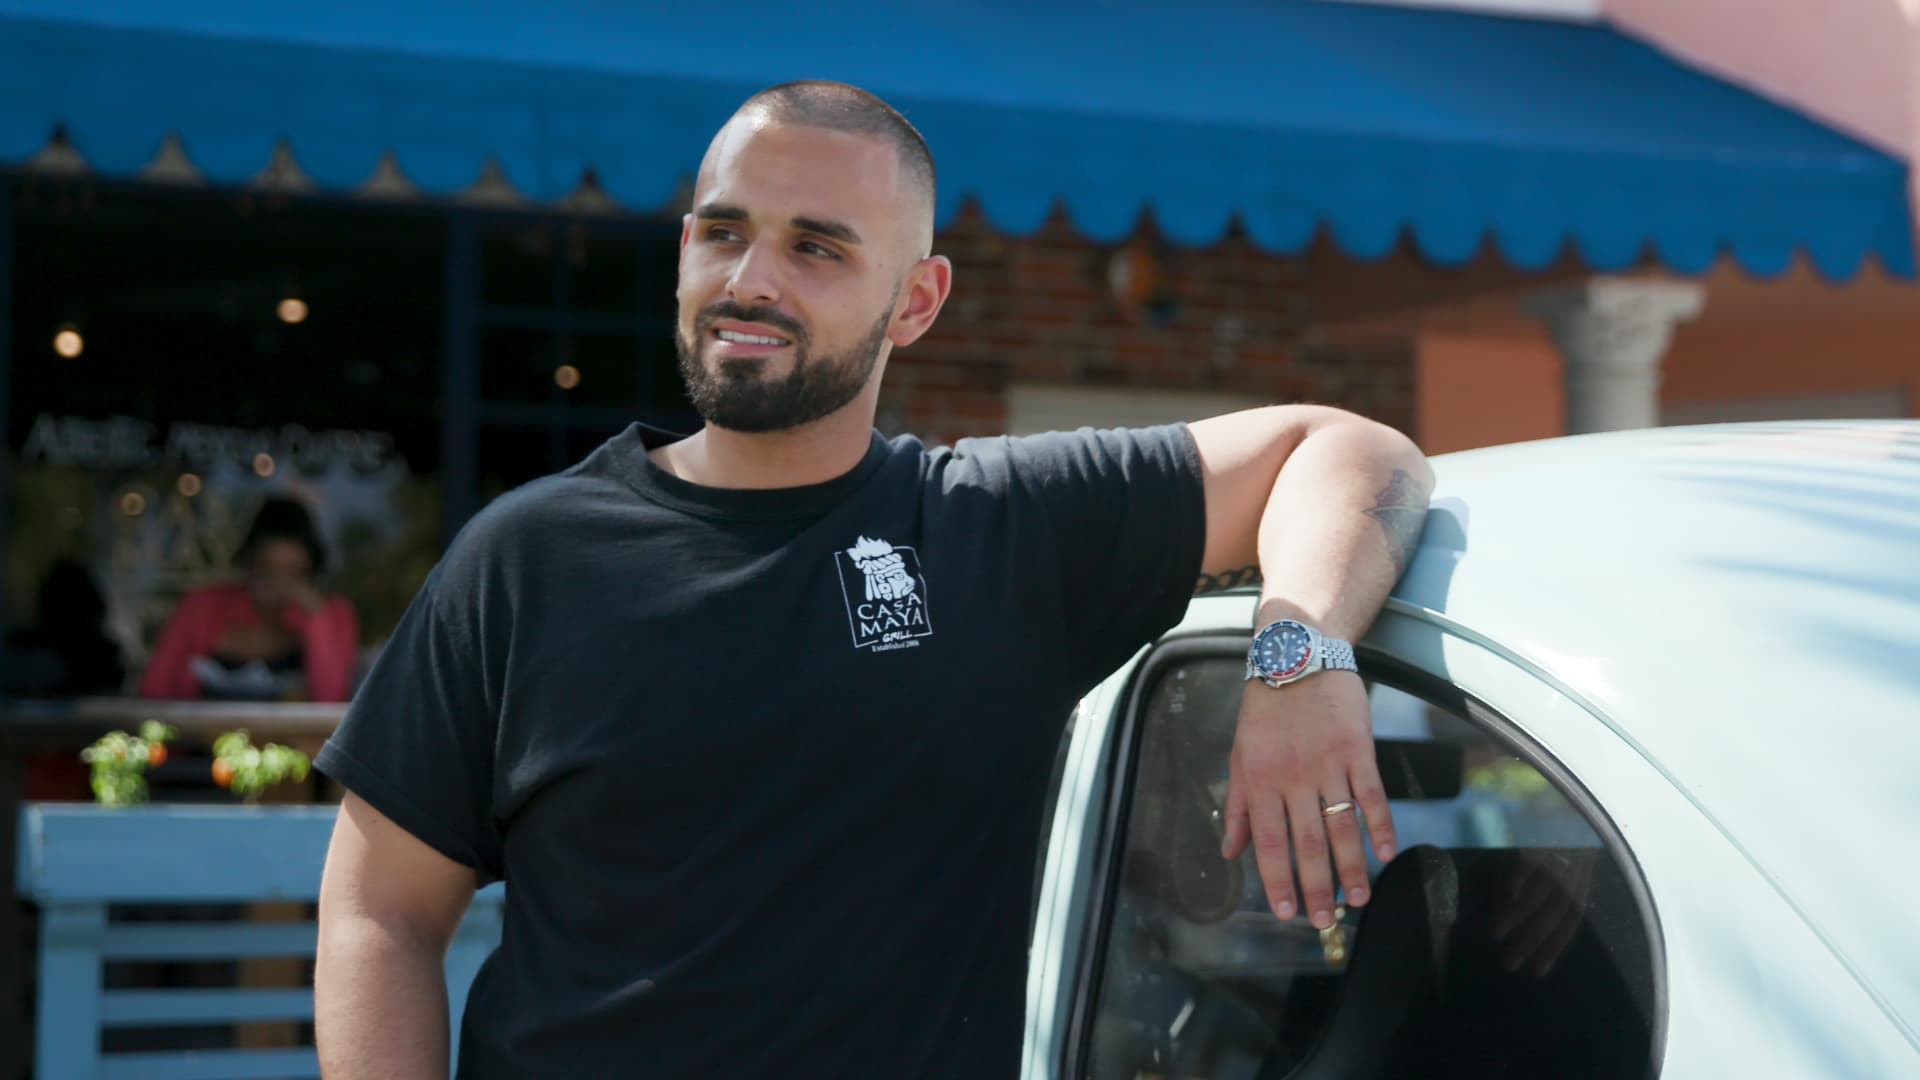 This 28-year-old lives on $90,000 a year in South Florida